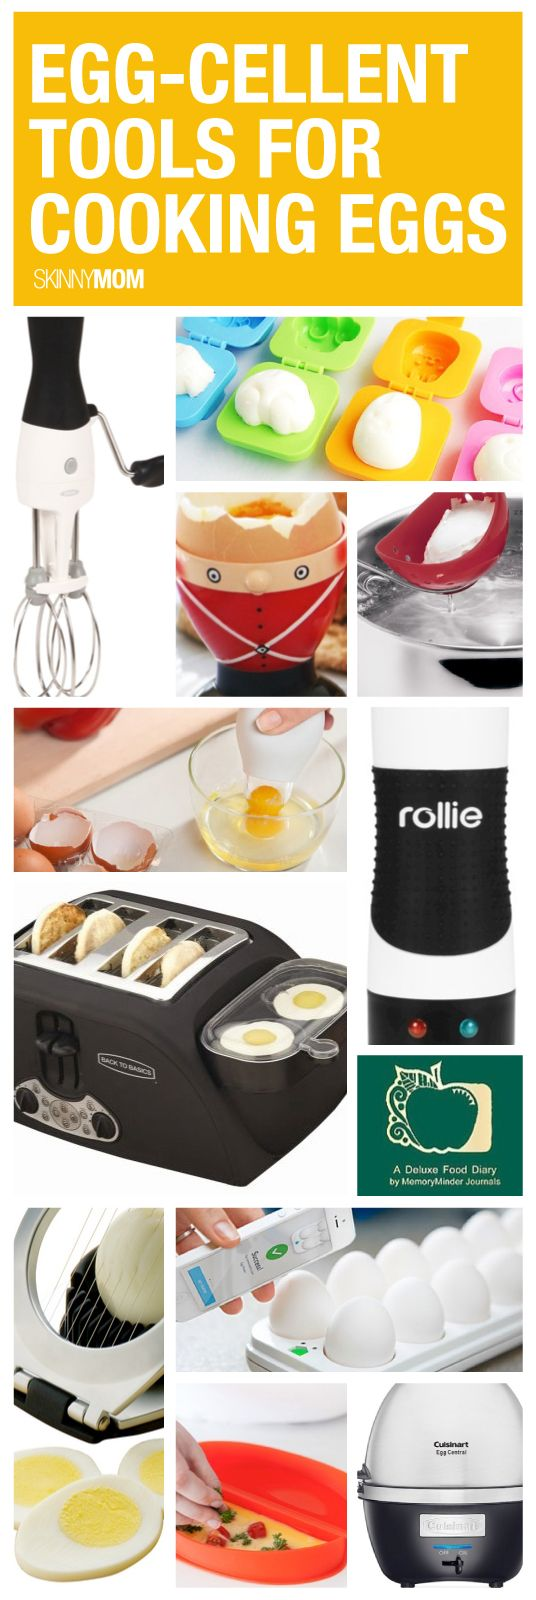 I have the Back to Basics toaster/egg cooker. AWESOME!!!! You can make you own egg McMuffins easily. I hard boil eggs in mine, too.